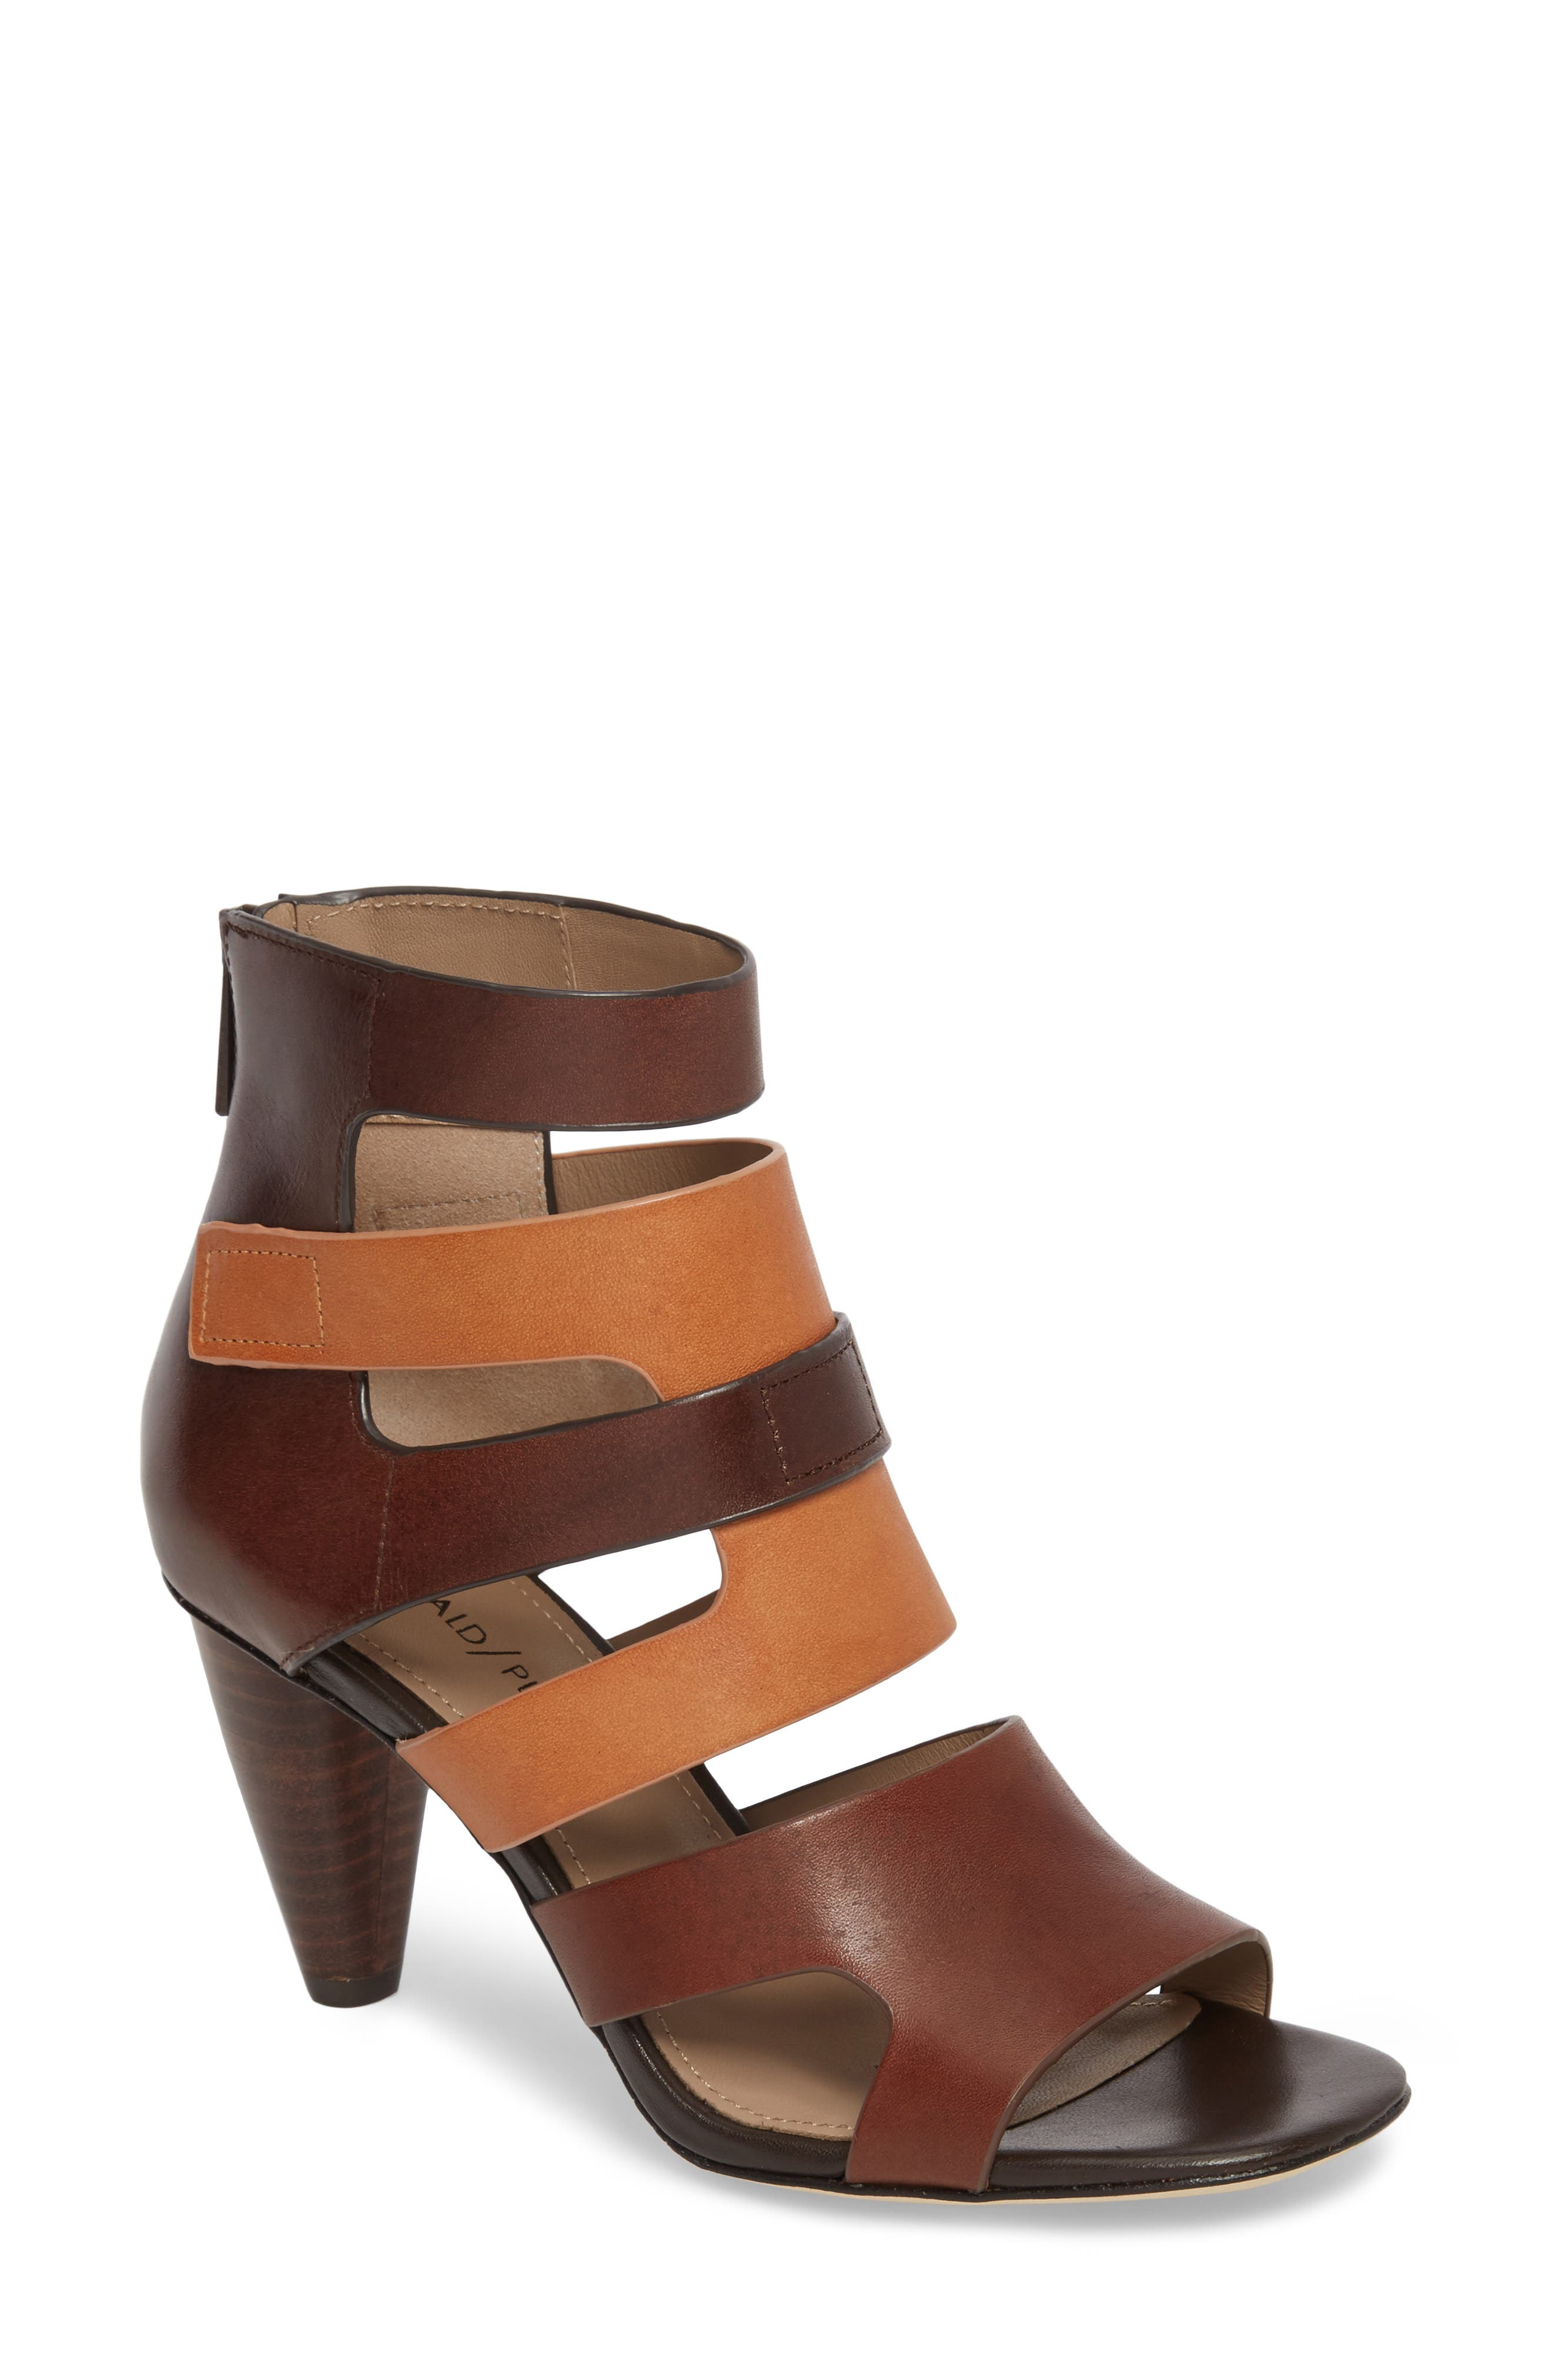 Paula Strappy Pump,                         Main,                         color, Teak Leather